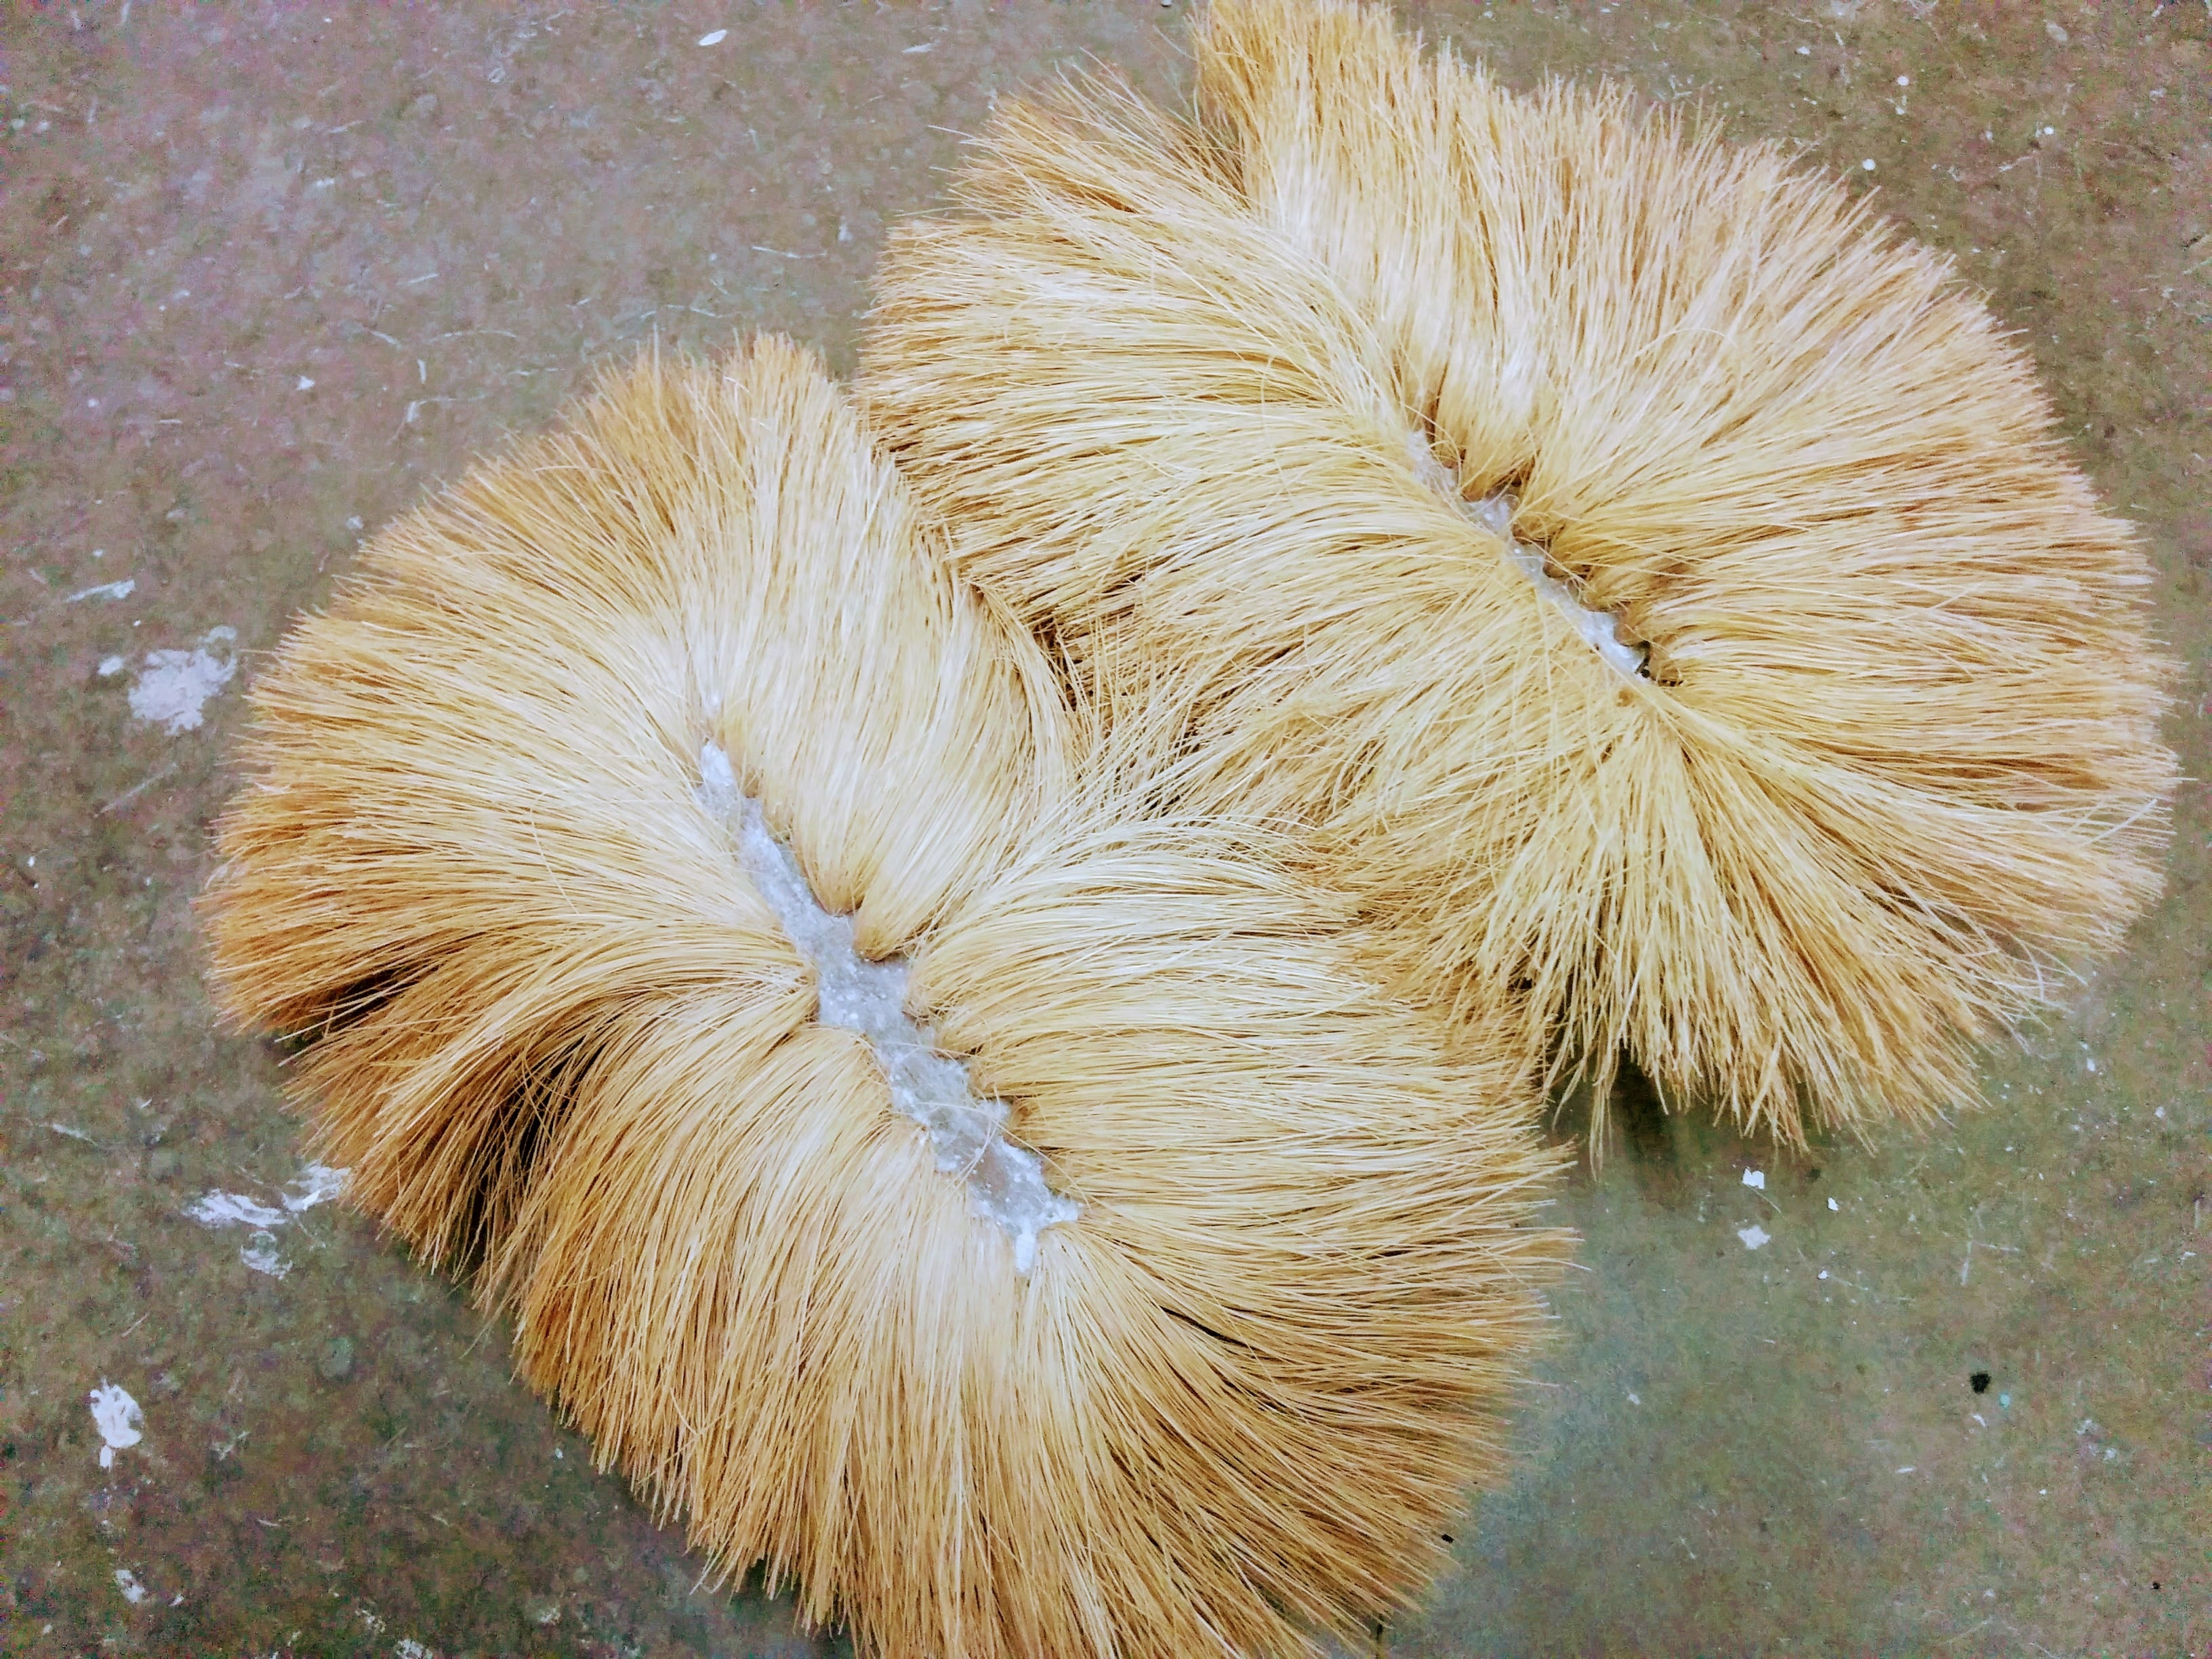 Bottom View Of A Double Crows Foot Stomp Brush Used For Drywall Texture